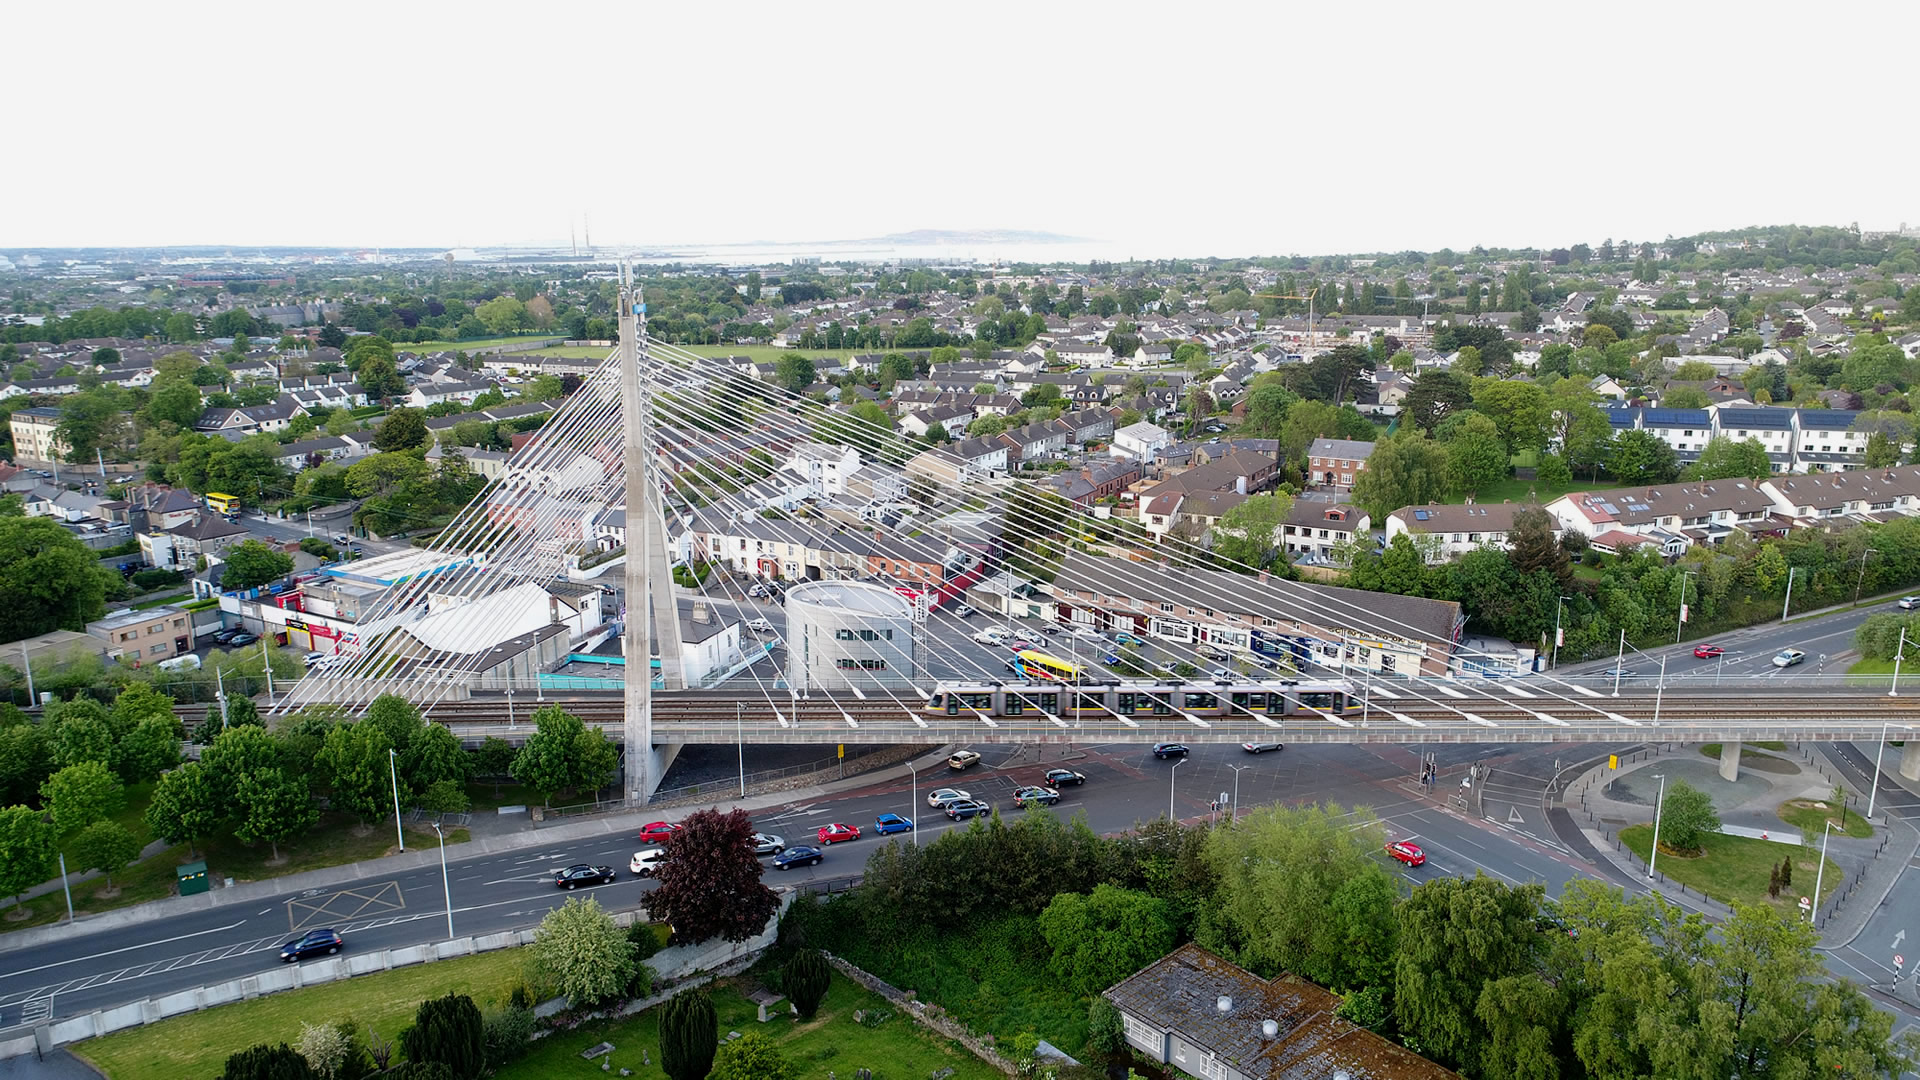 Dundrum Suspension Bridge